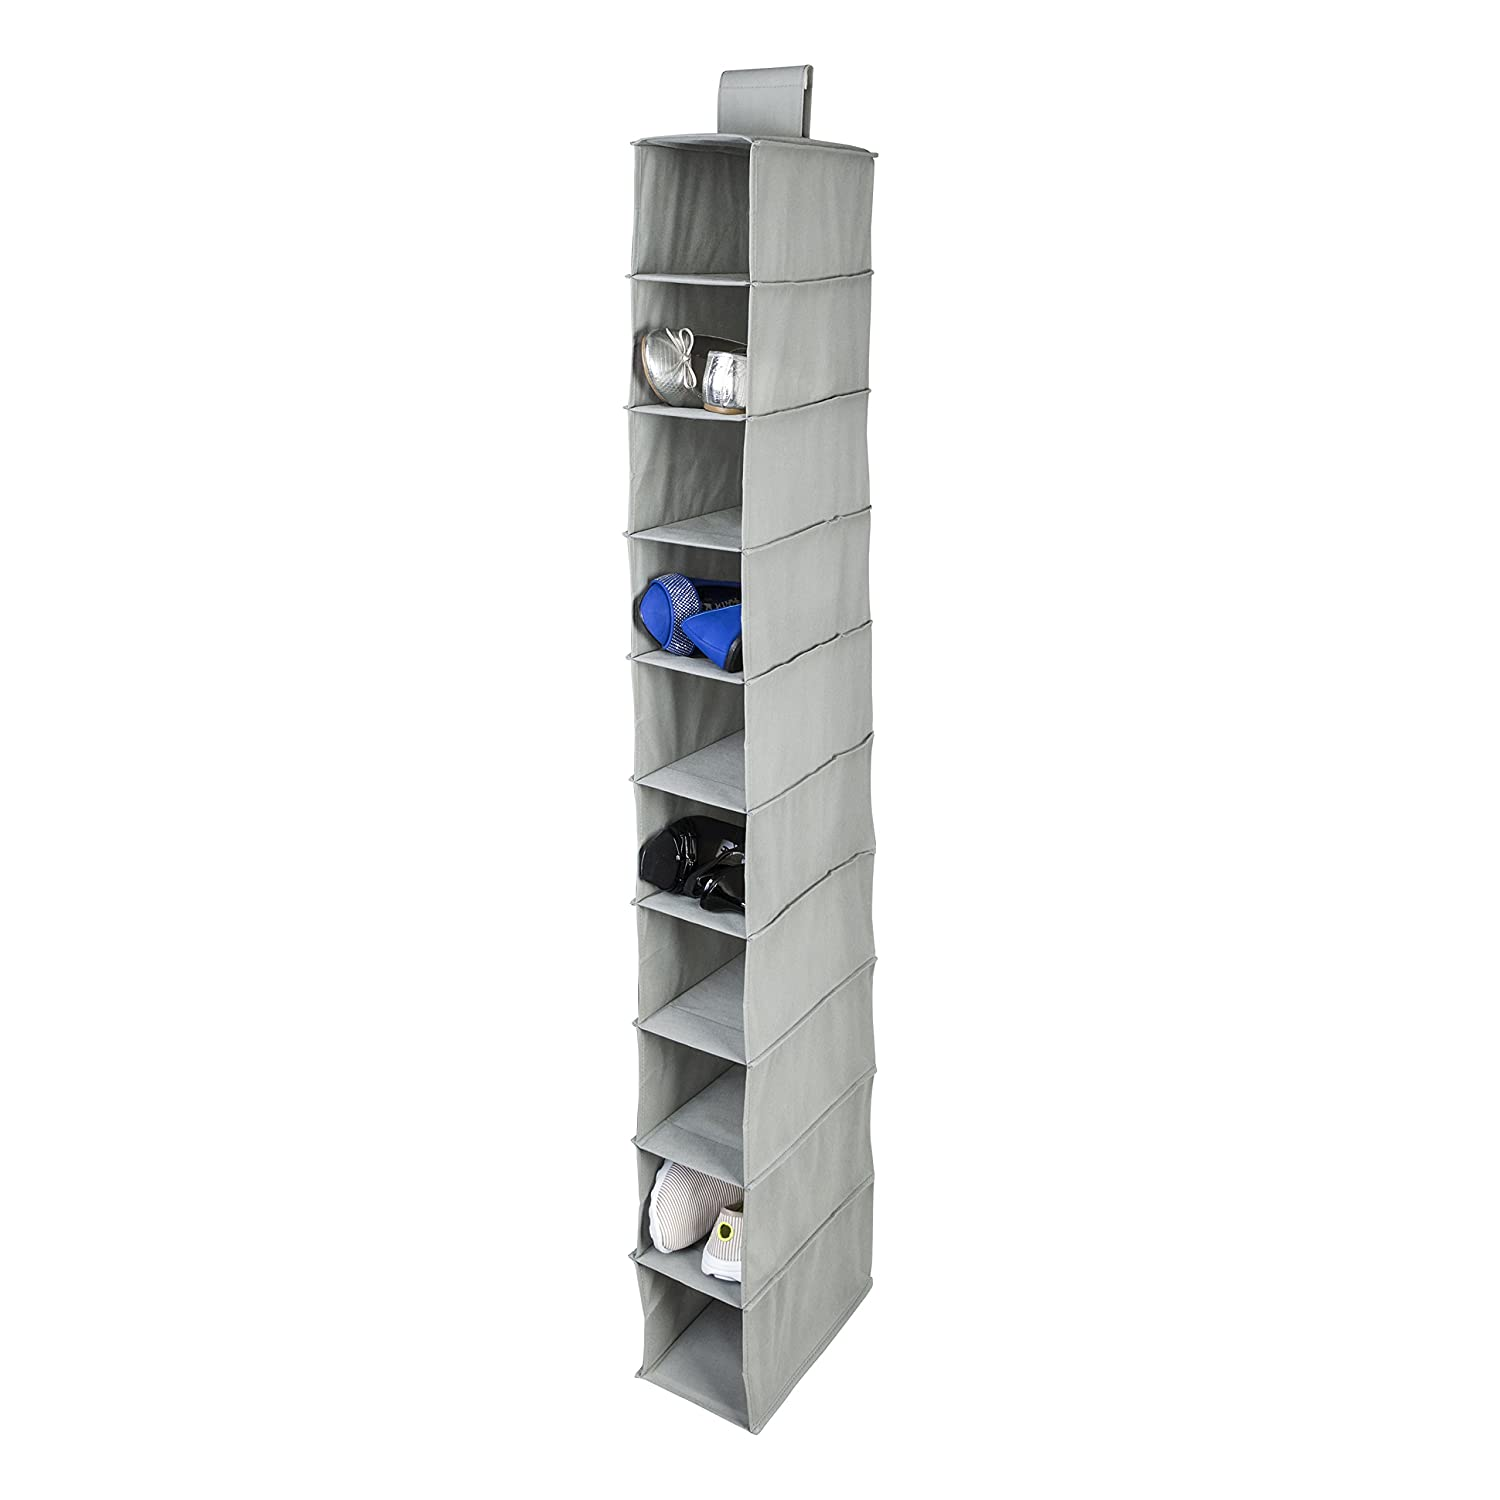 Honey-Can-Do SFT-01277 Drawers For Hanging Organizer SFT-01247